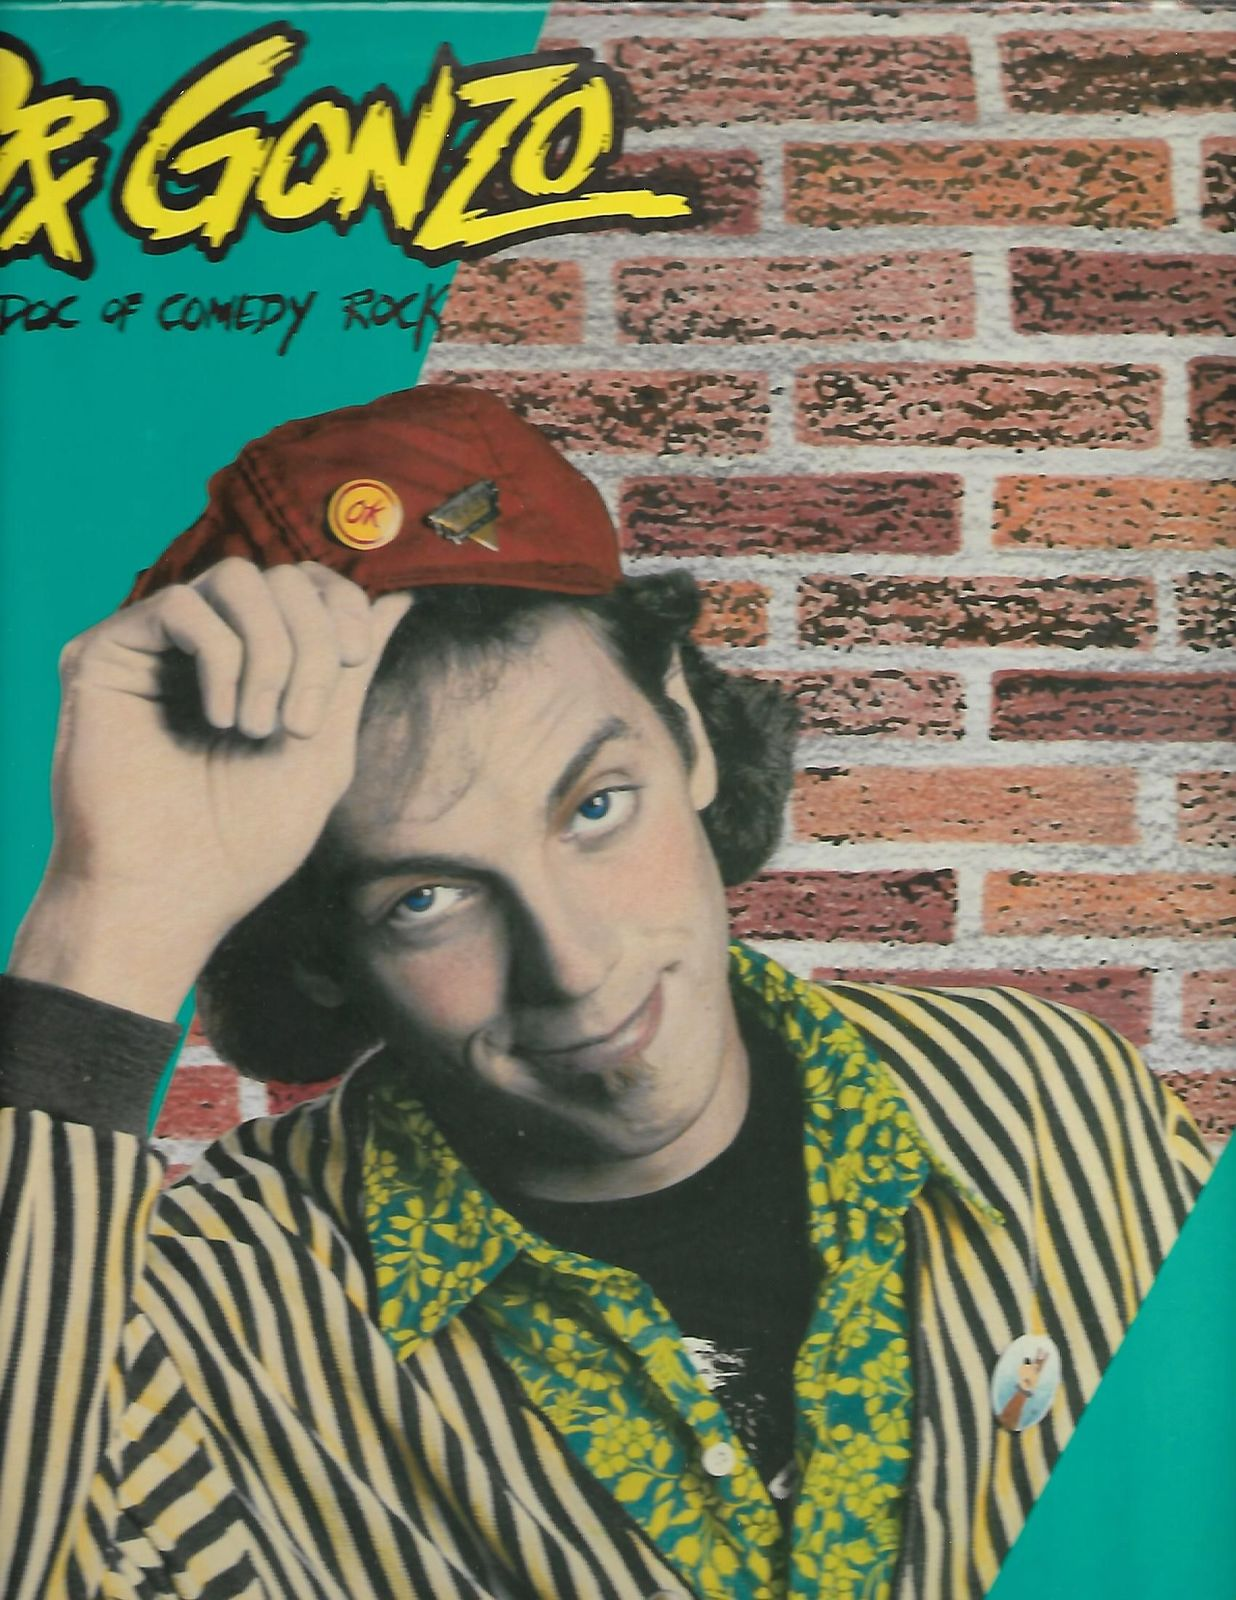 Dr. Gonzo (5) – The Doc Of Comedy Rock